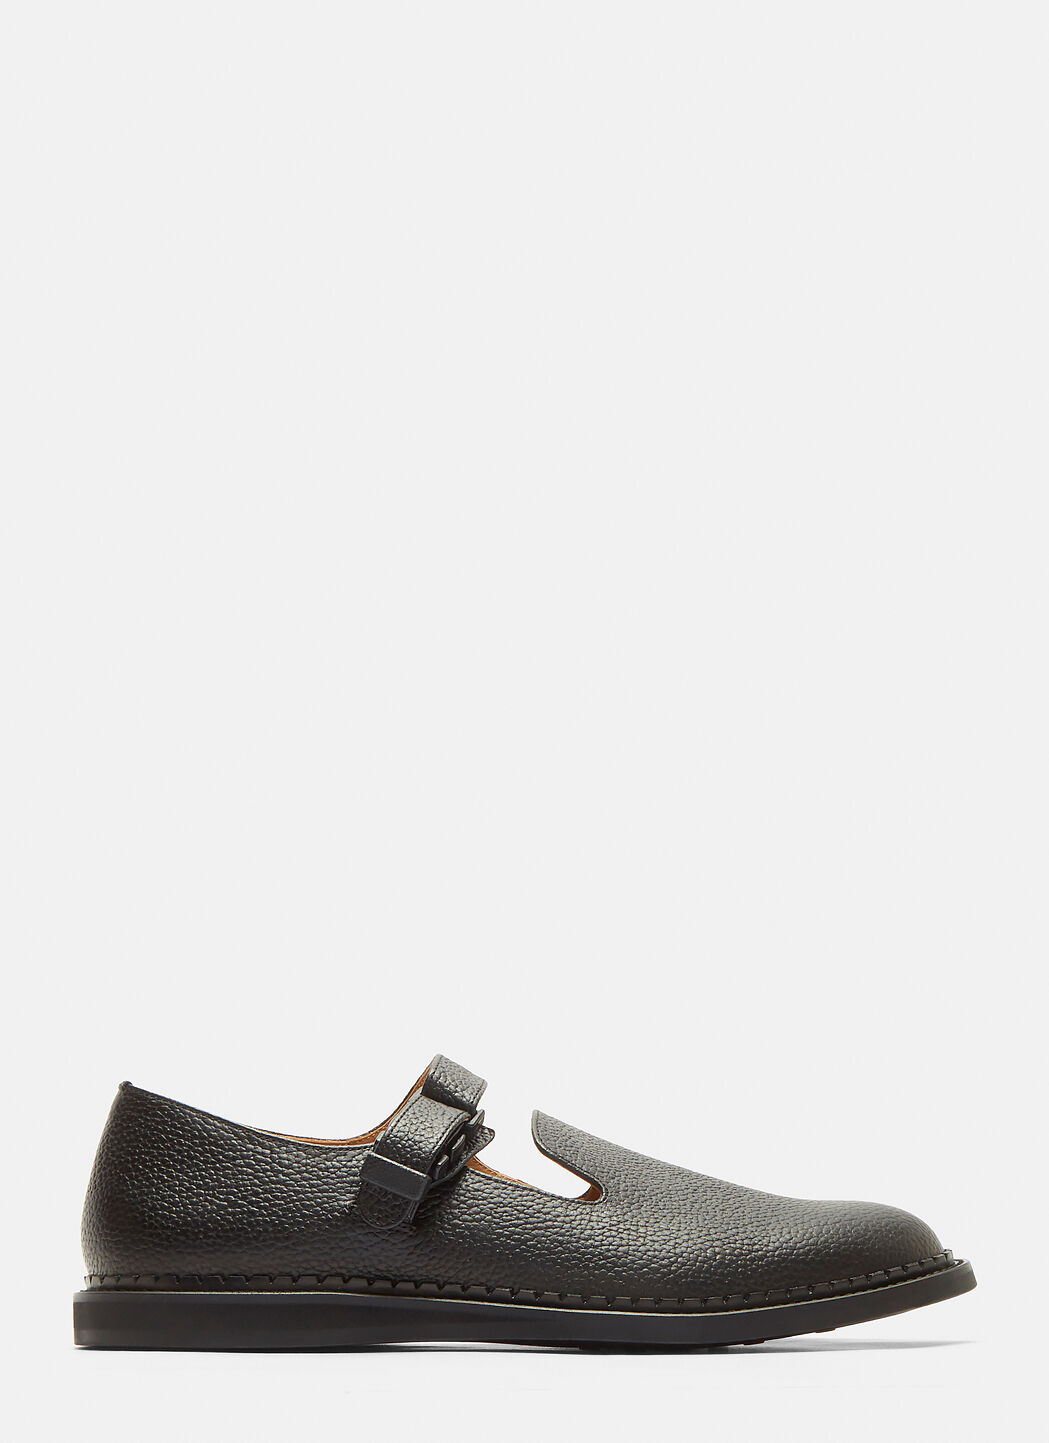 HENDER SCHEME Neo Strap Leather Shoes in Black